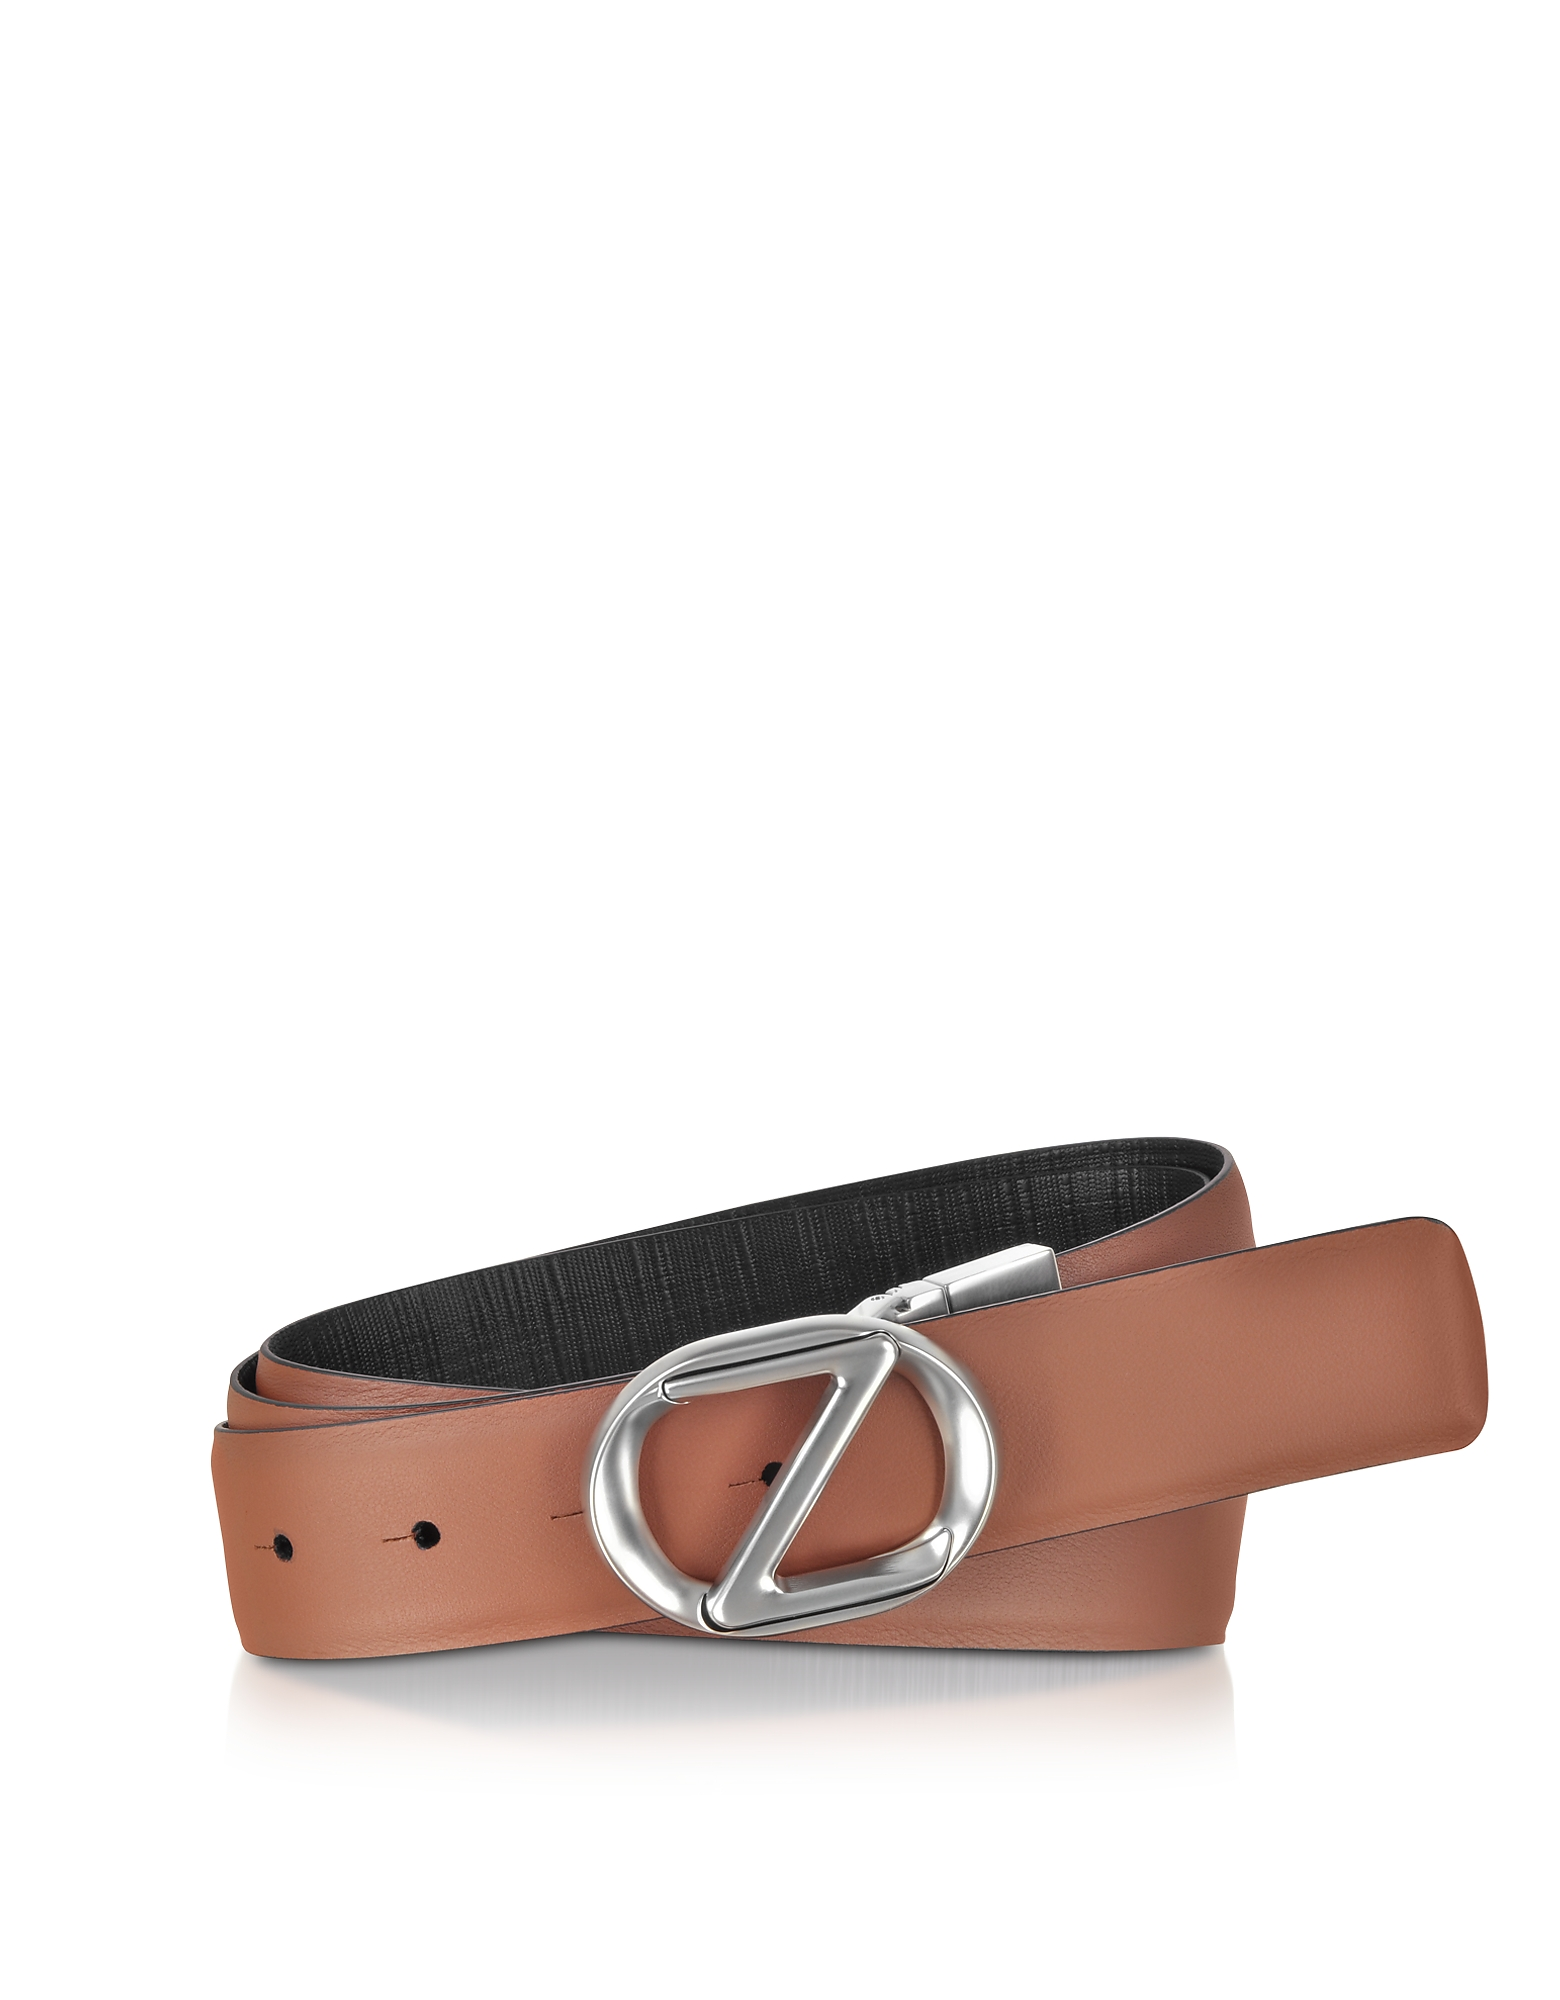 Leather Adjustable and Reversible Men's Belt